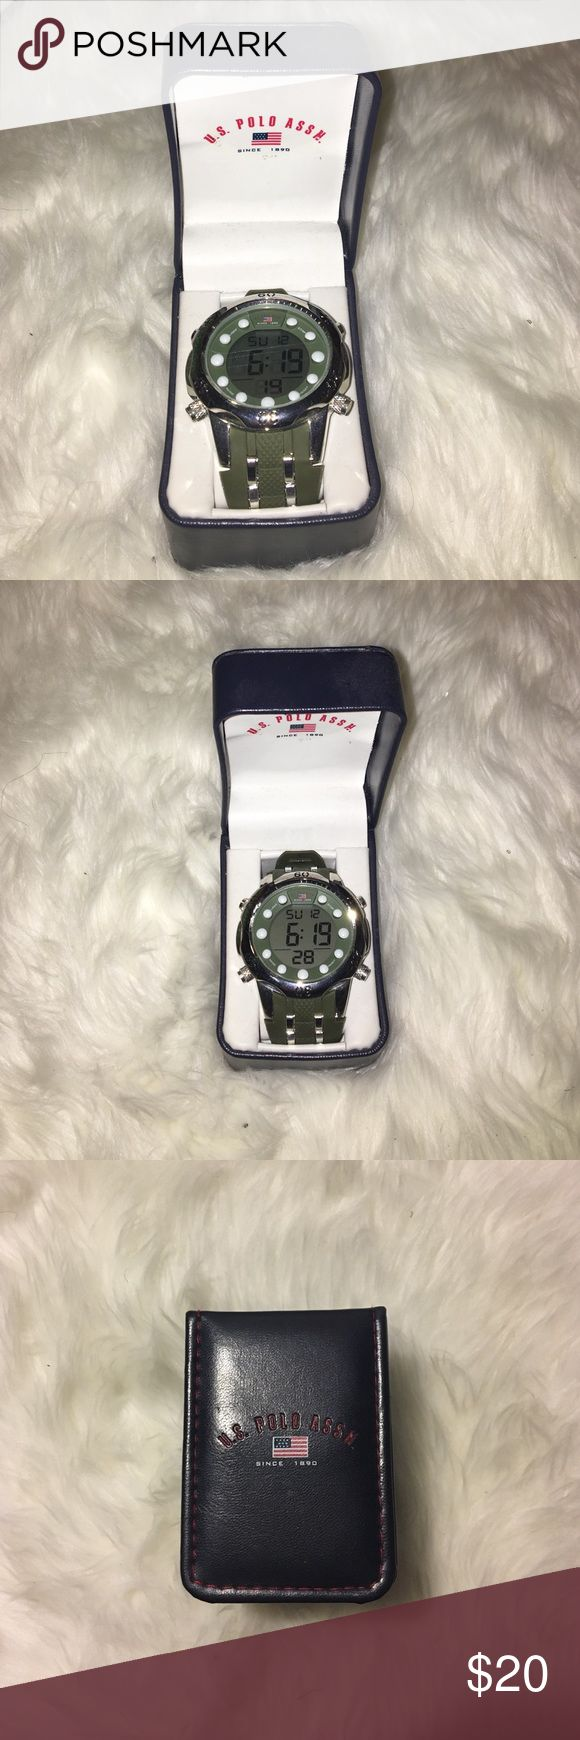 Men's Polo Watch Green men's polo watch, never been worn. I've had it for a year and it's stayed in the case the whole time. U.S. Polo Assn. Accessories Watches